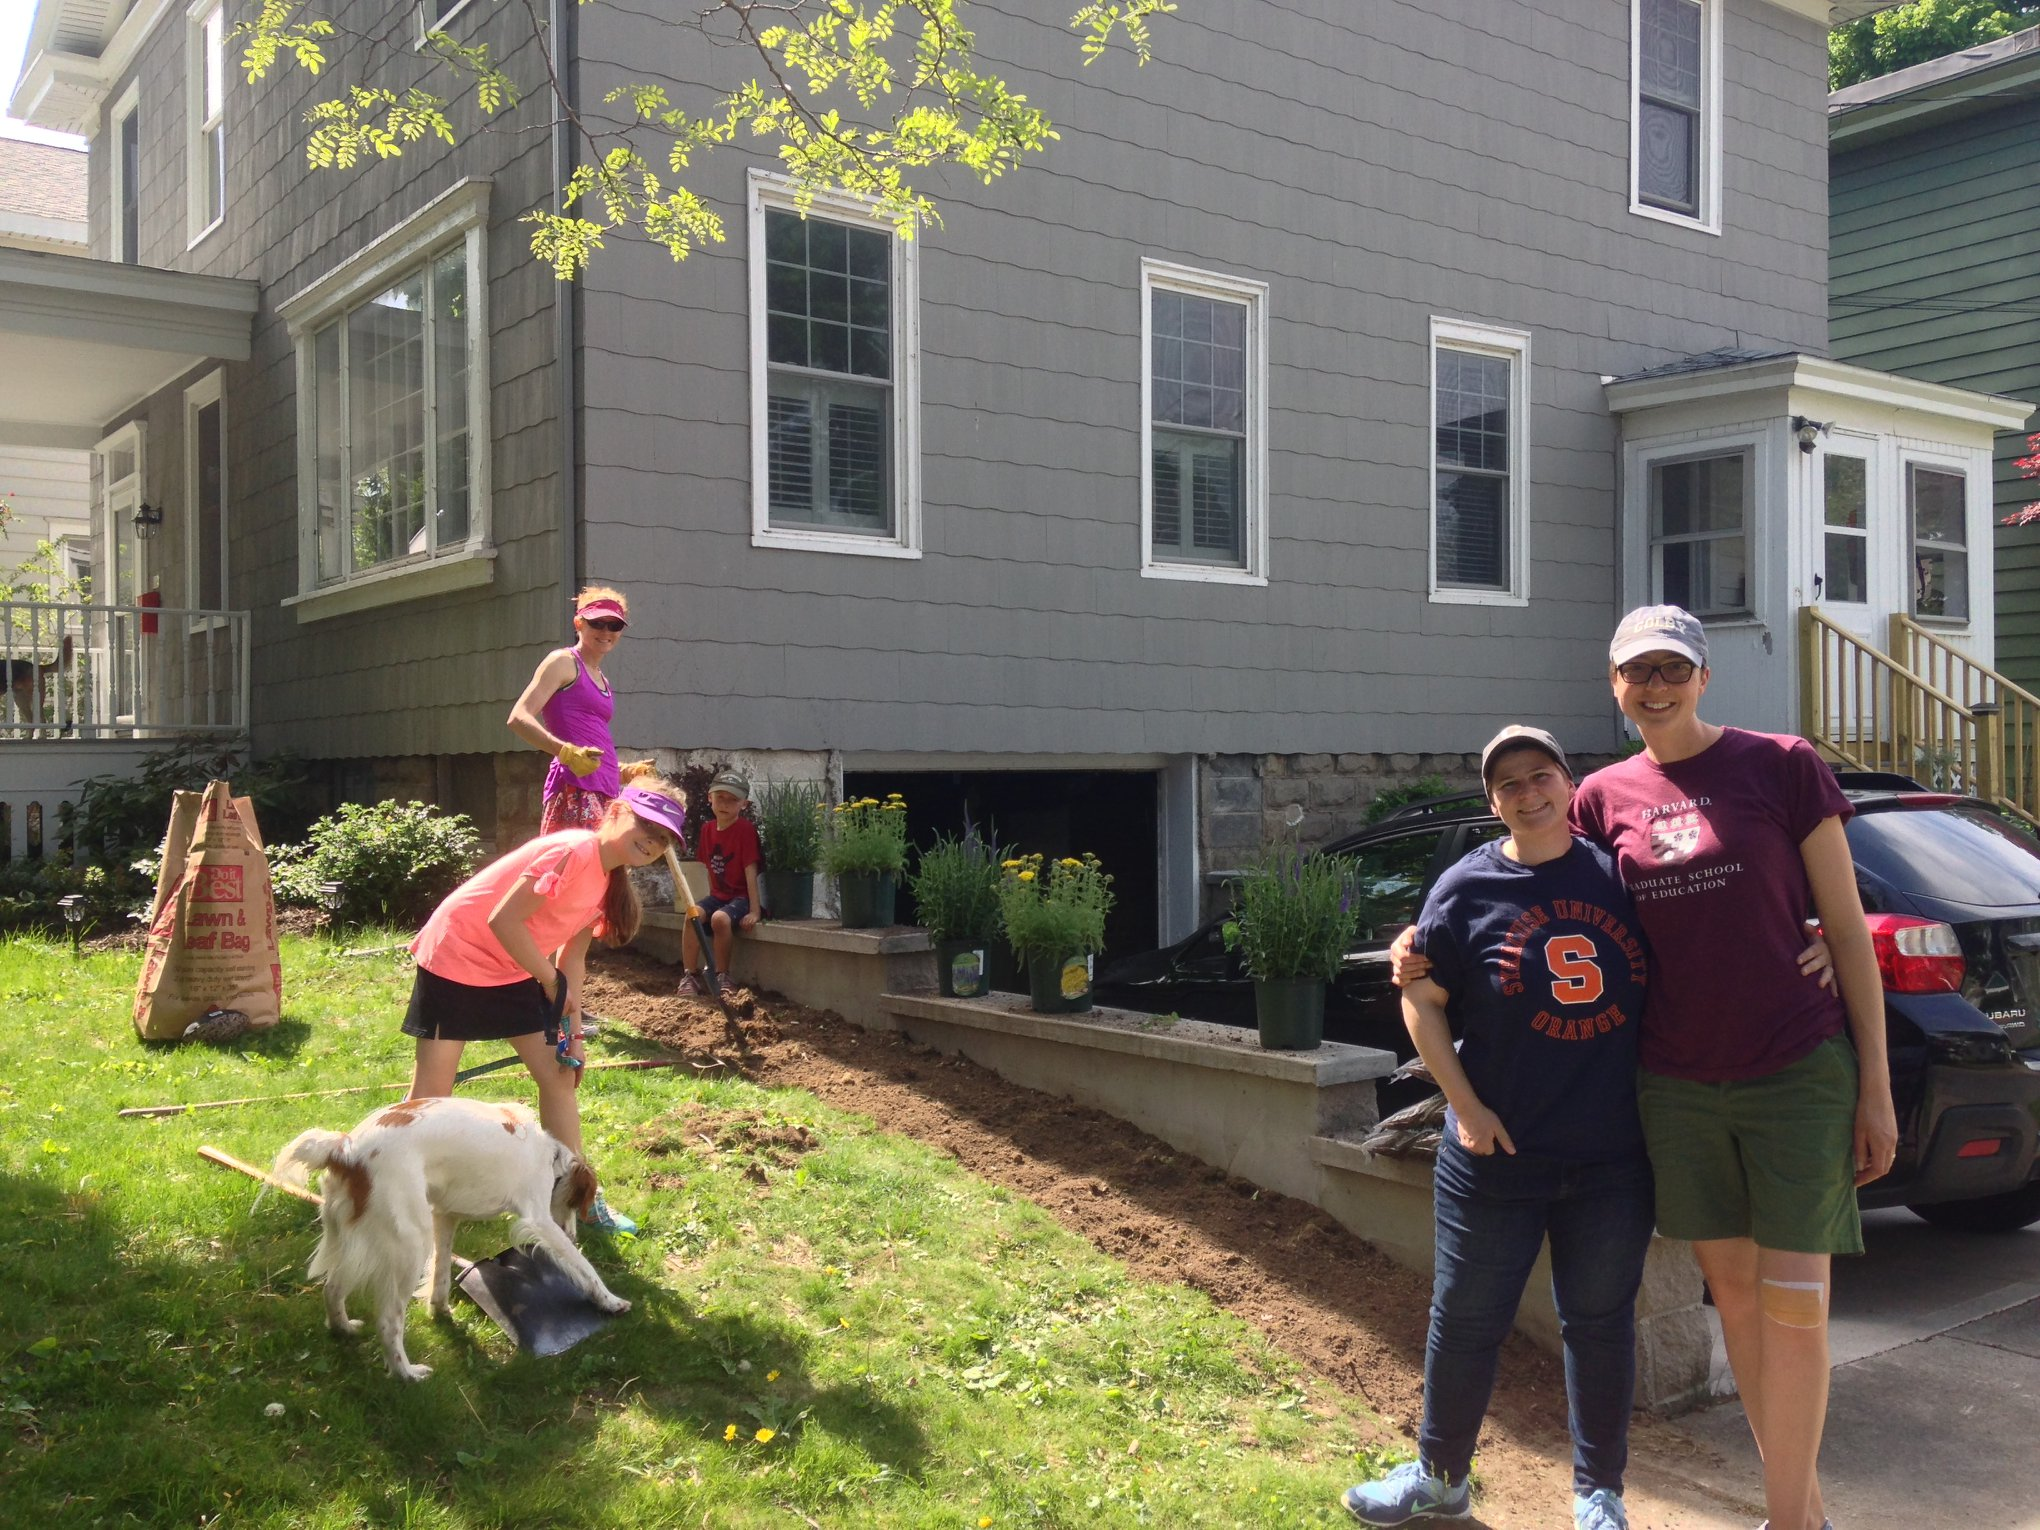 New Oswego homeowners Kristi Eck and Liz Eck joined with neighbors in leading the efforts for beautification of their street. (Source: Oswego Renaissance Association Facebook page)